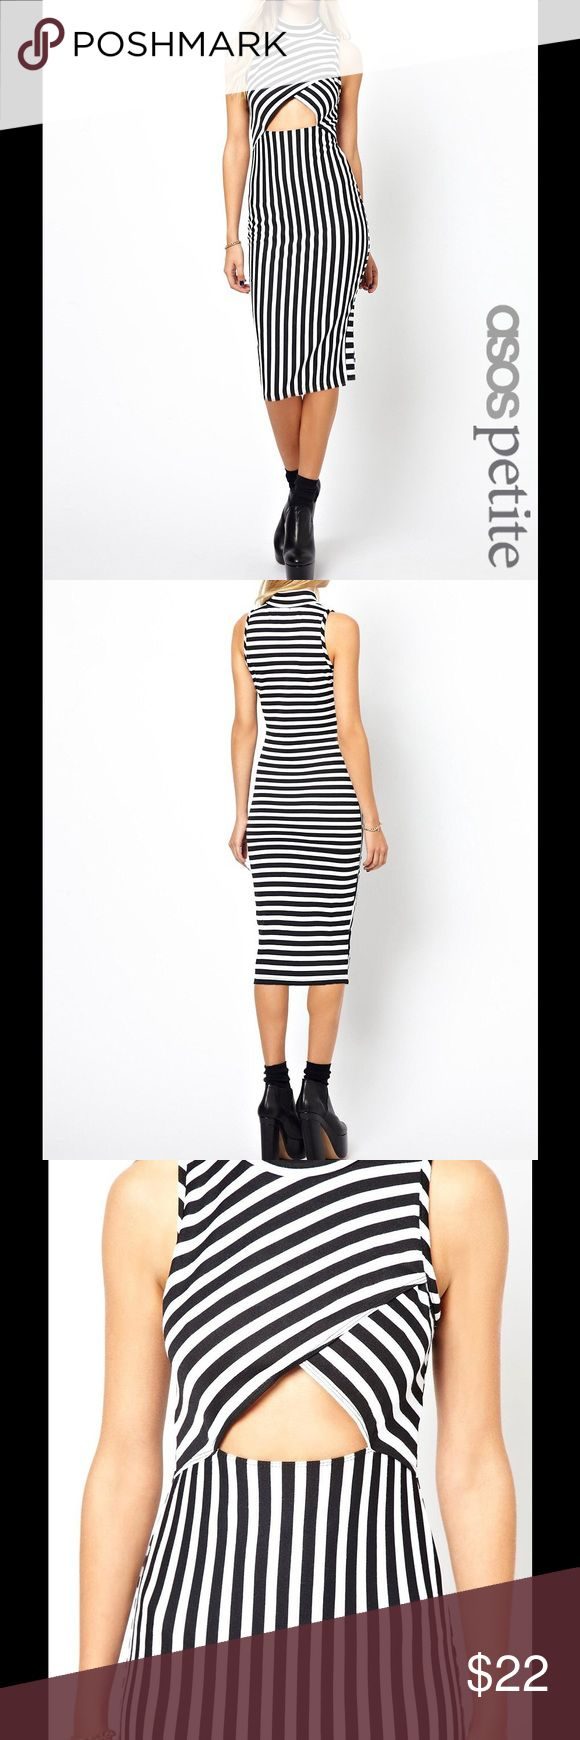 ASOS Striped Body-Conscious Dress W/ Cut Out Front ASOS PETITE Exclusive Striped Body-Conscious Dress With Cut Out Front ASOS Dresses Midi